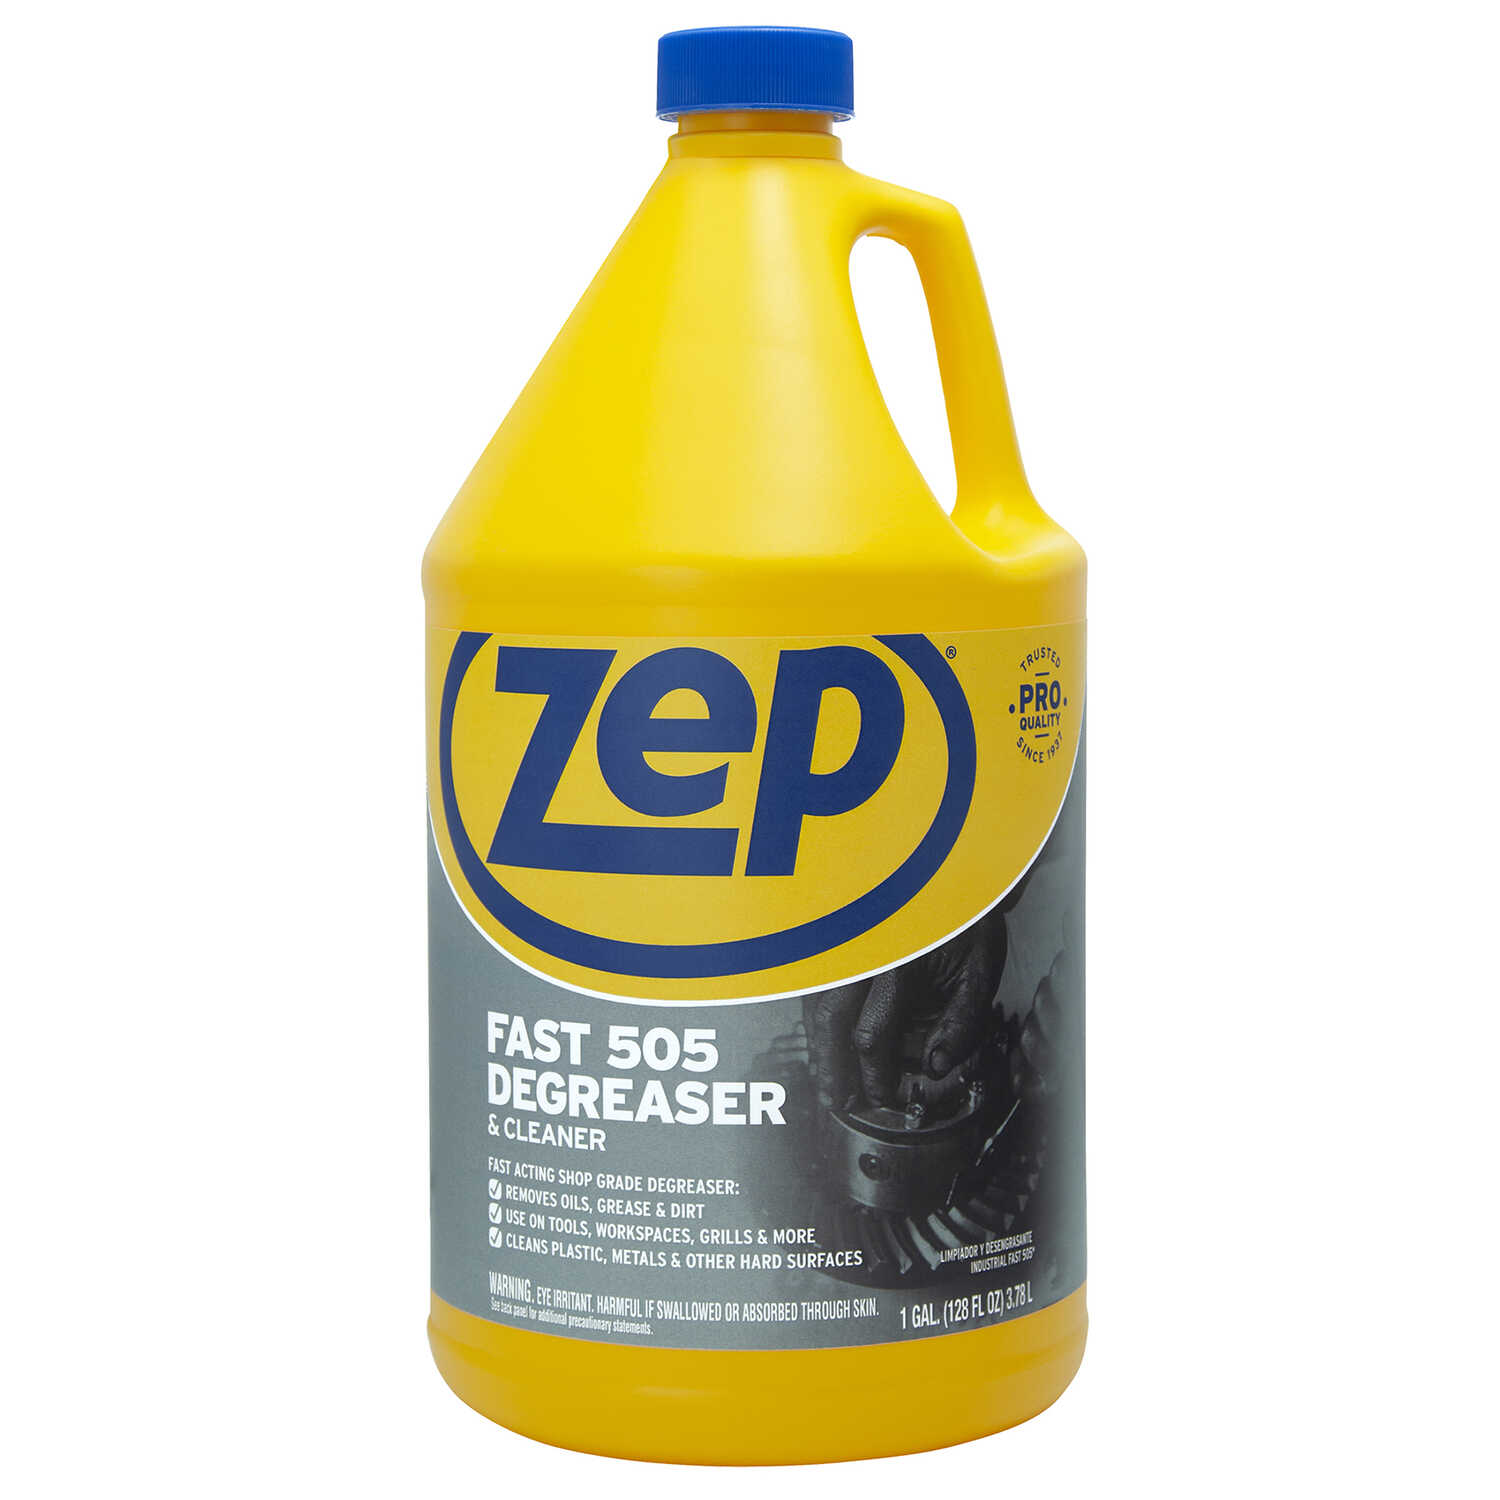 Zep  Fast 505  Lemon Scent Cleaner and Degreaser  128 oz. Liquid